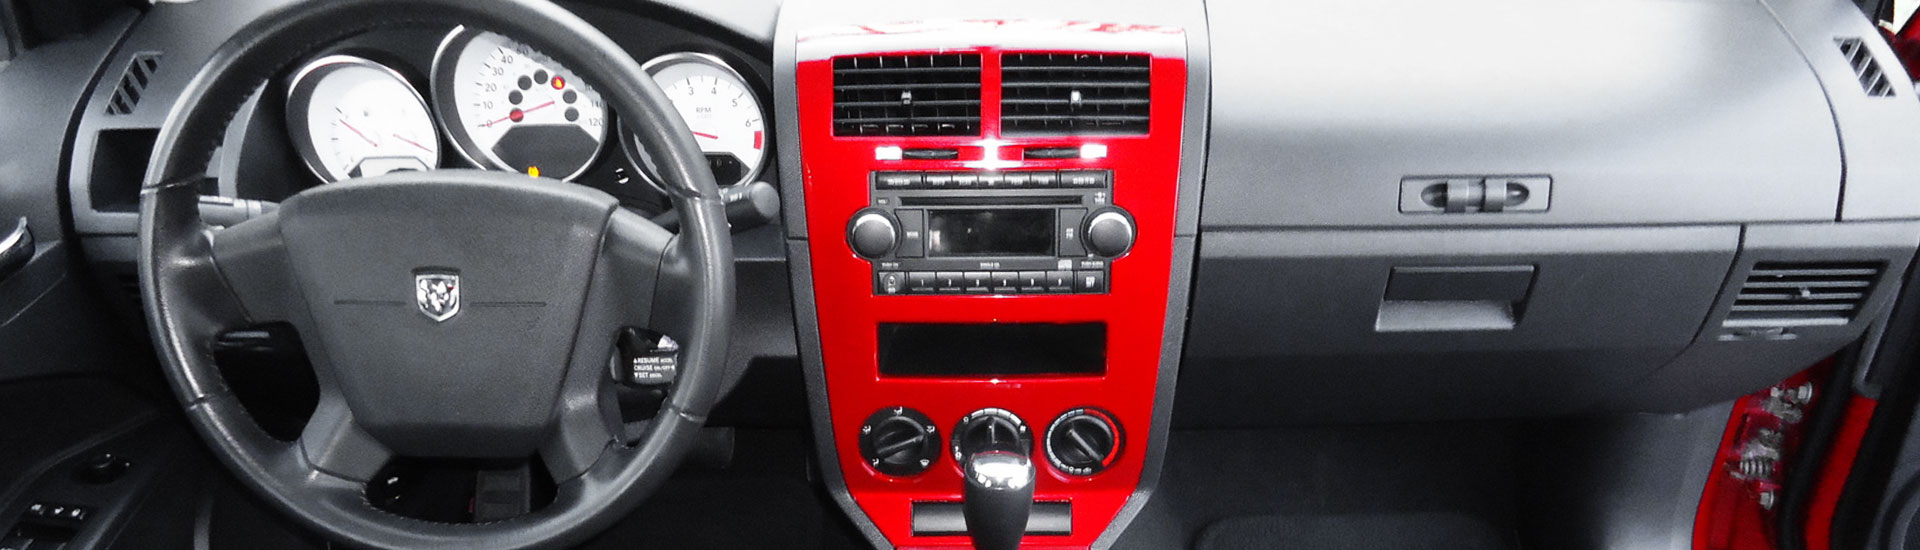 2001 Dodge Dakota Custom Dash Kits